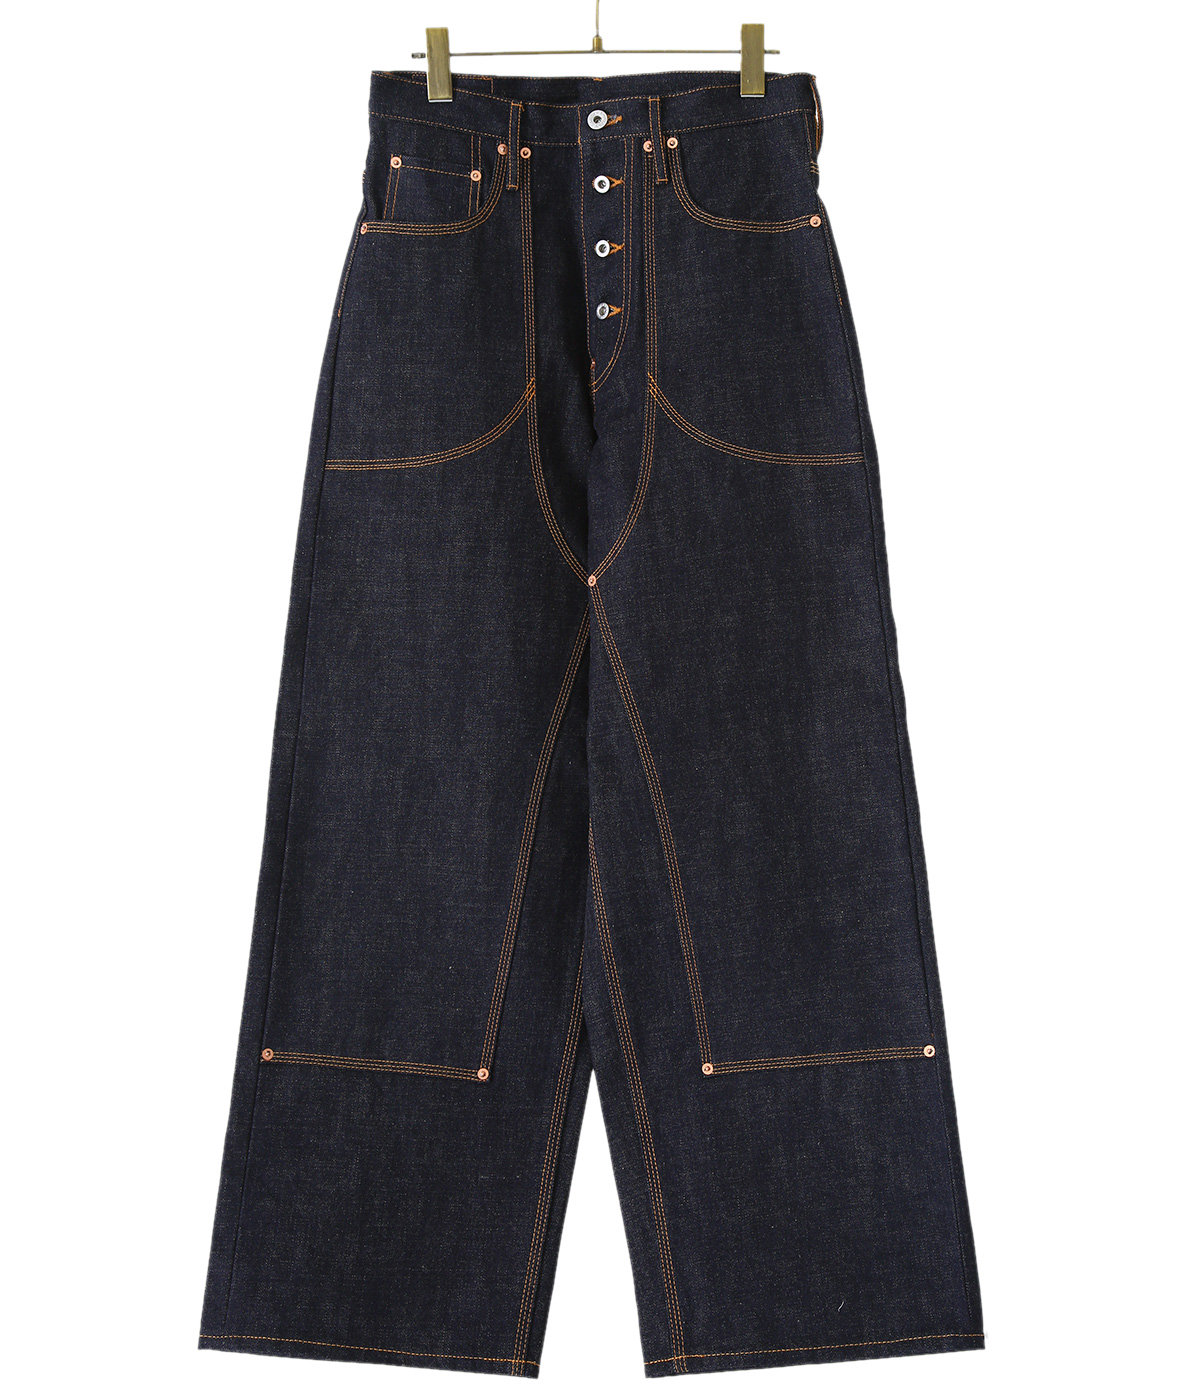 【予約】CLASSIC DOUBLE KNEE DENIM PANTS